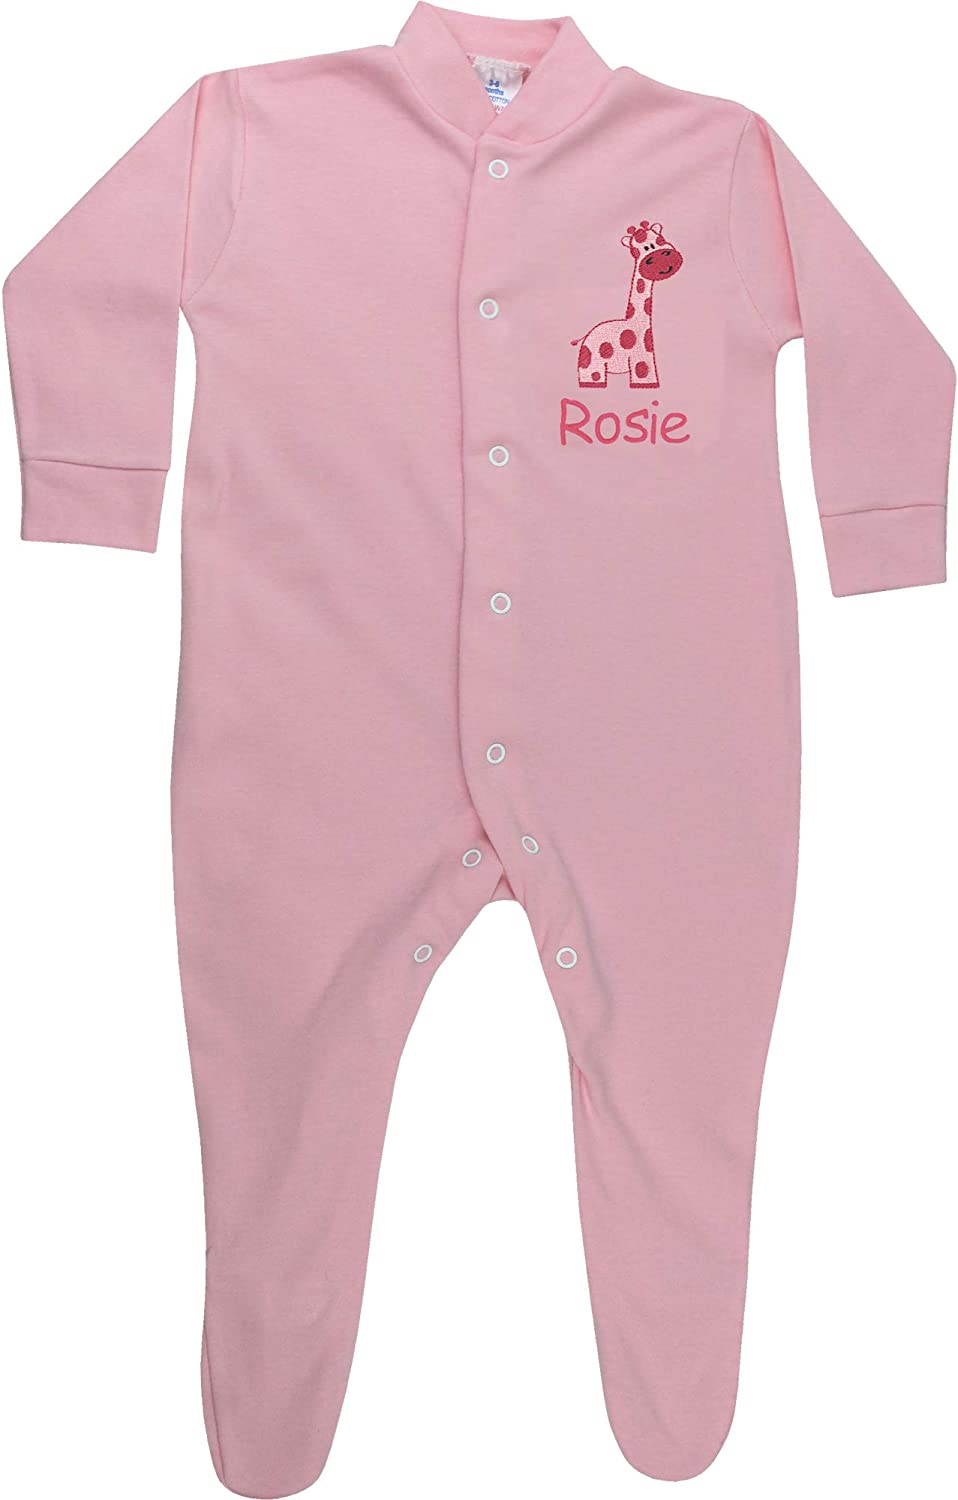 TeddyTs Personalised Baby Pink Giraffe Embroidered All in One Sleepsuit